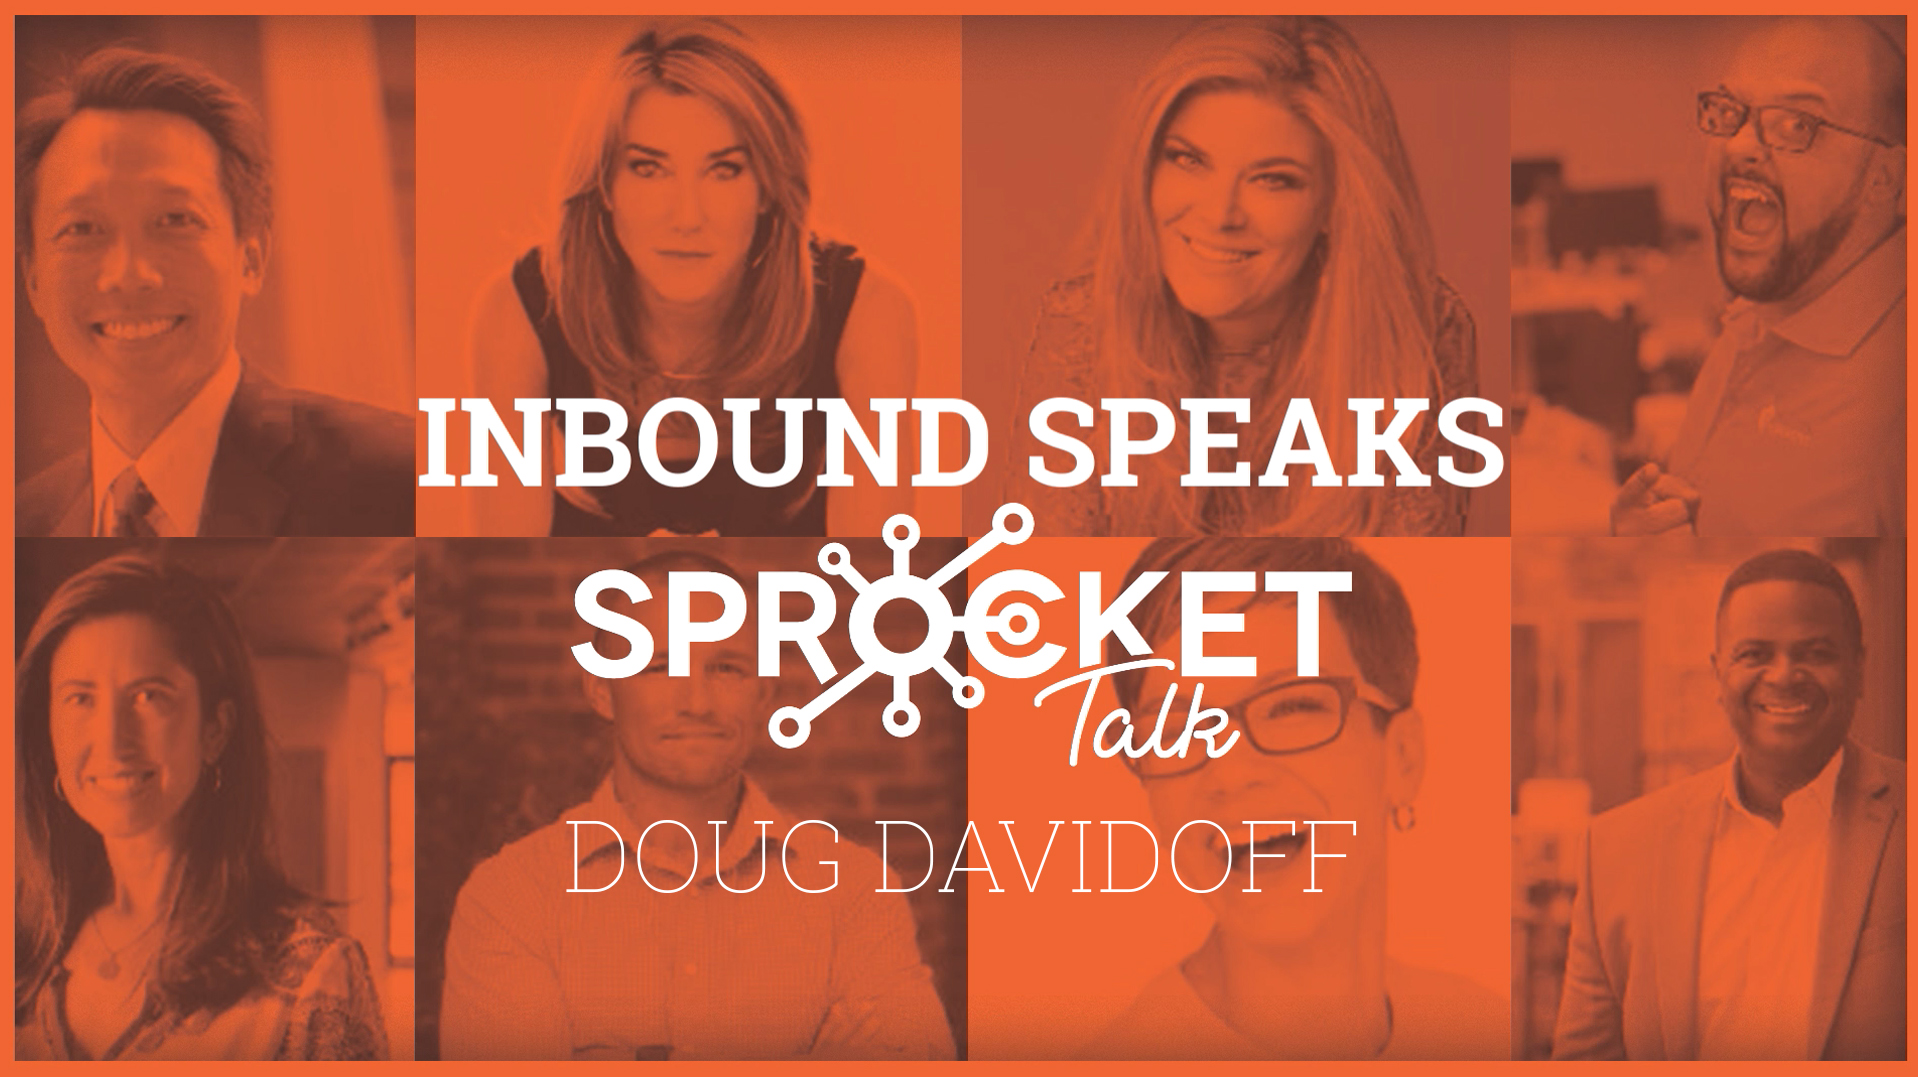 Doug Davidoff The Ultimate Sales Manager: Coaching Your Reps to Coach Themselves! #Inbound19